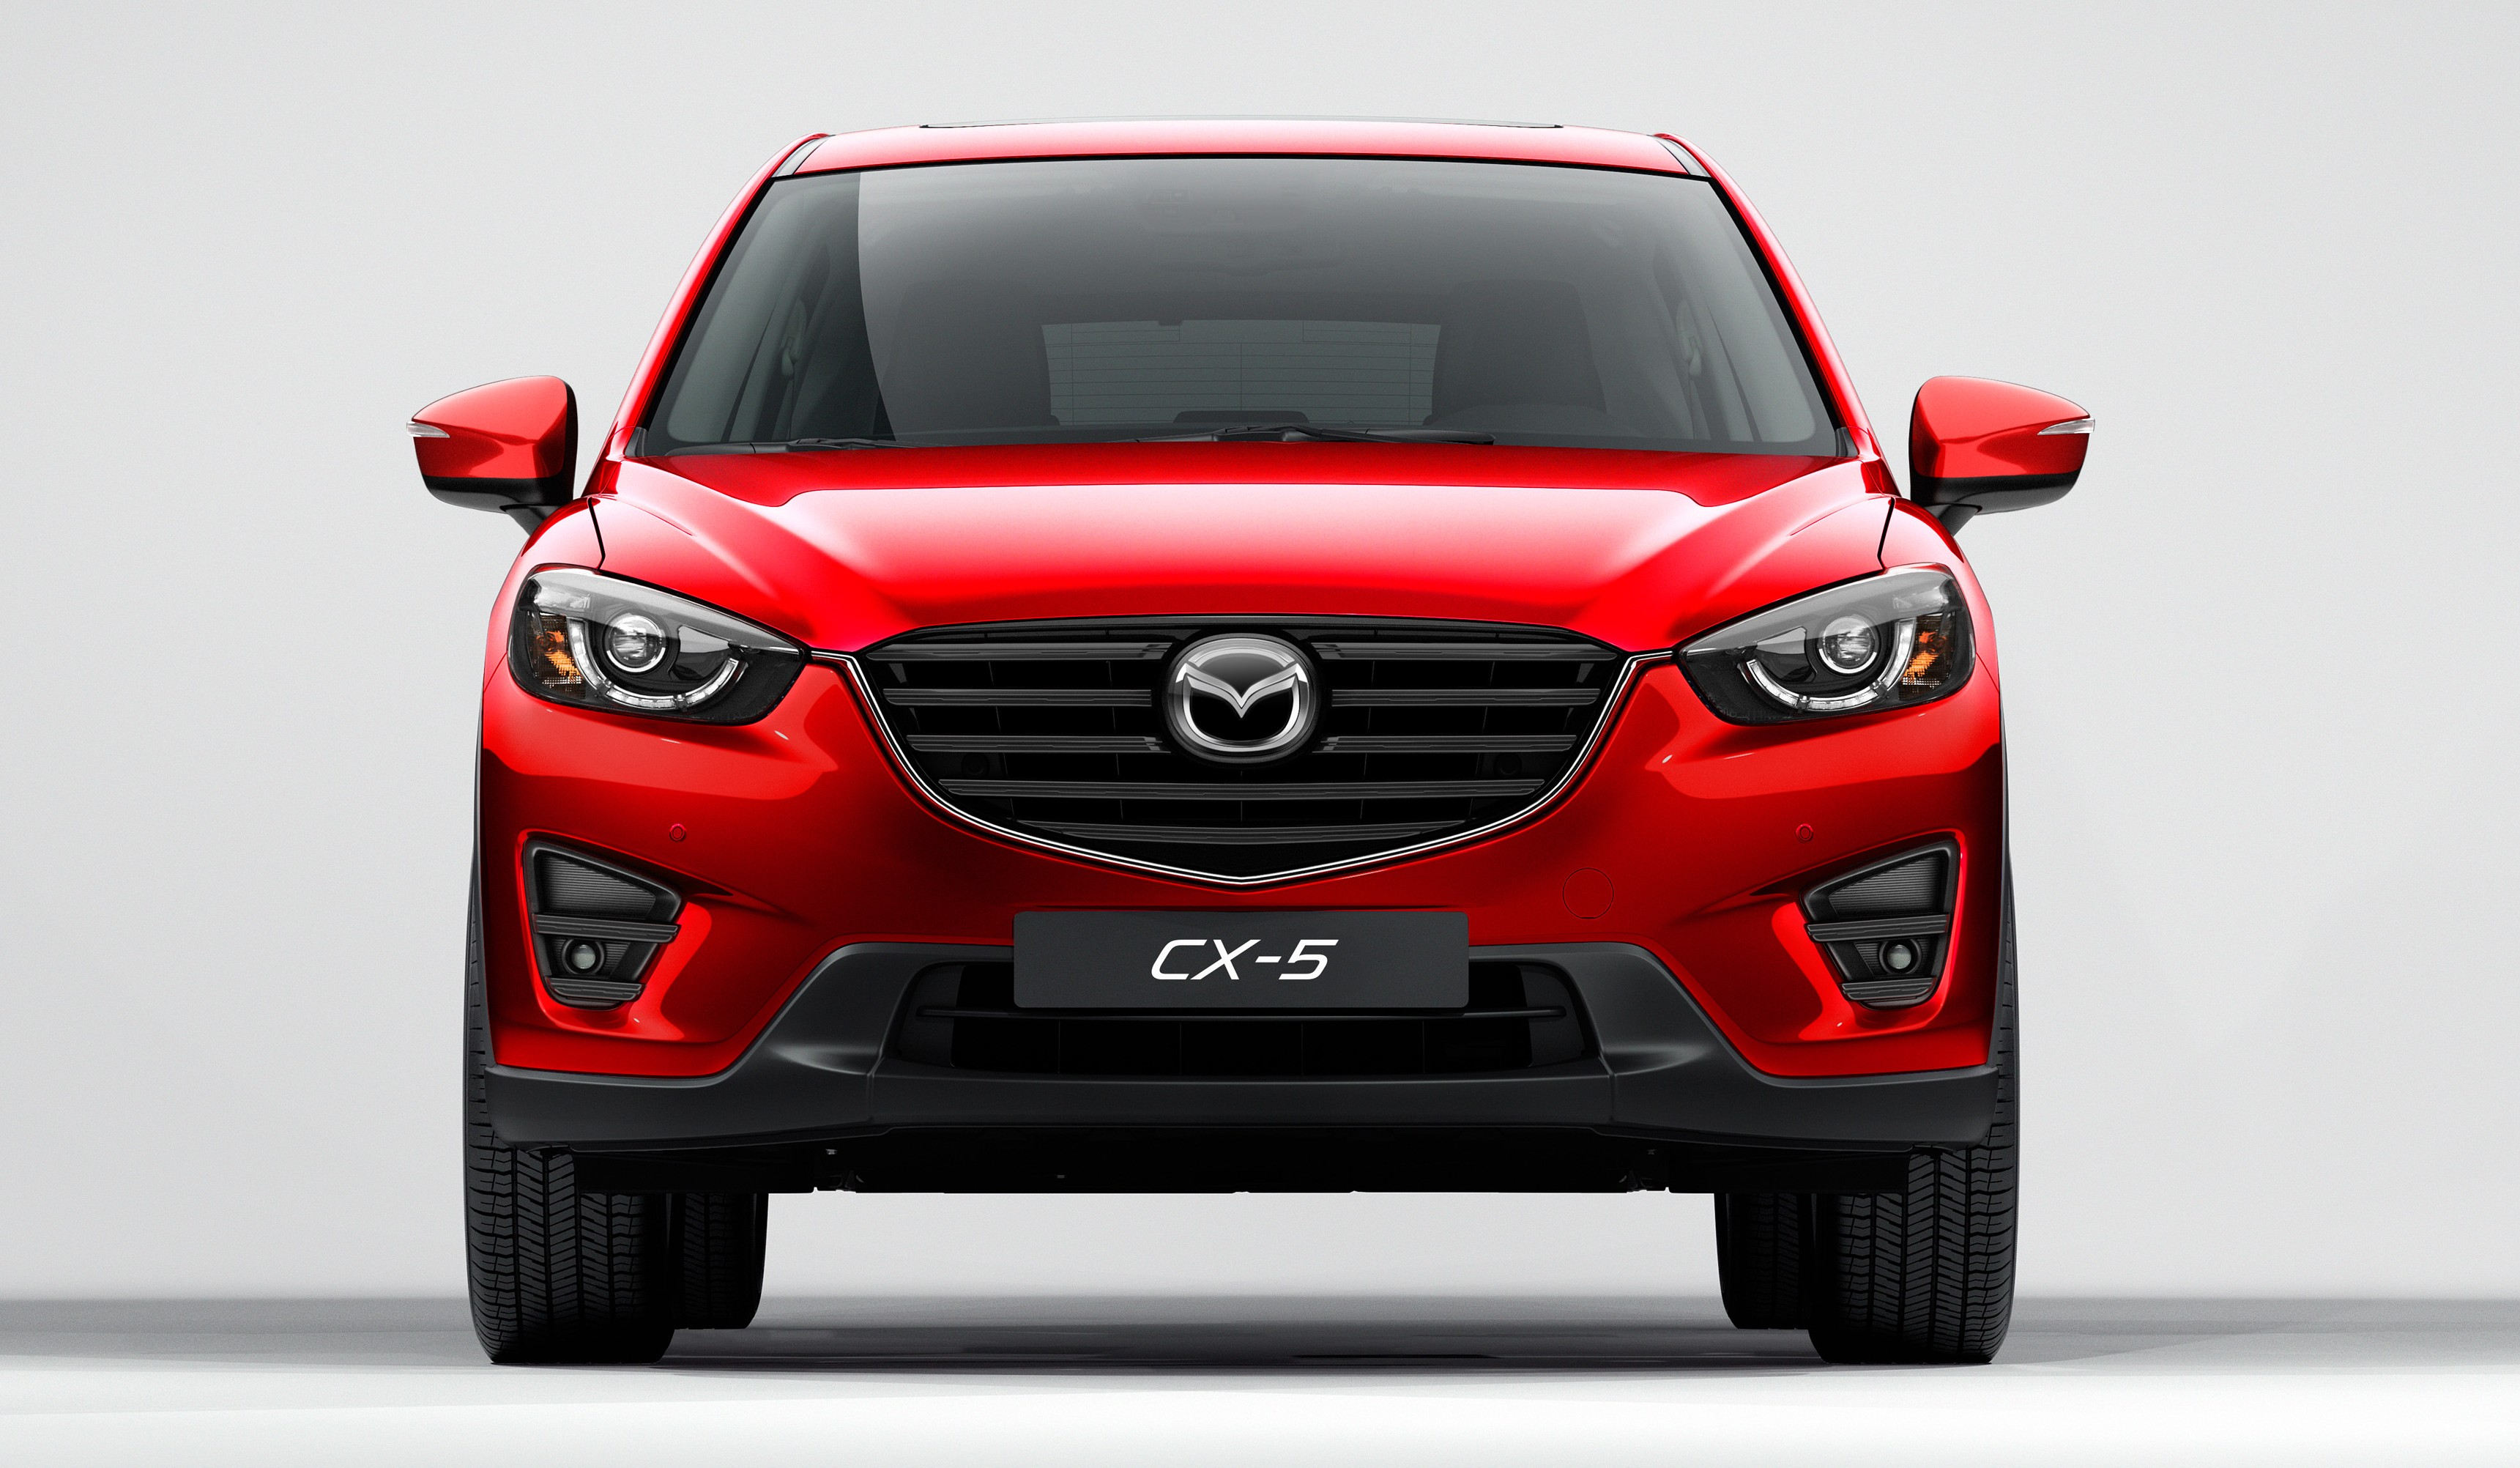 Mazda CX-5 facelift appears at LA with minor upgrades Image 289654